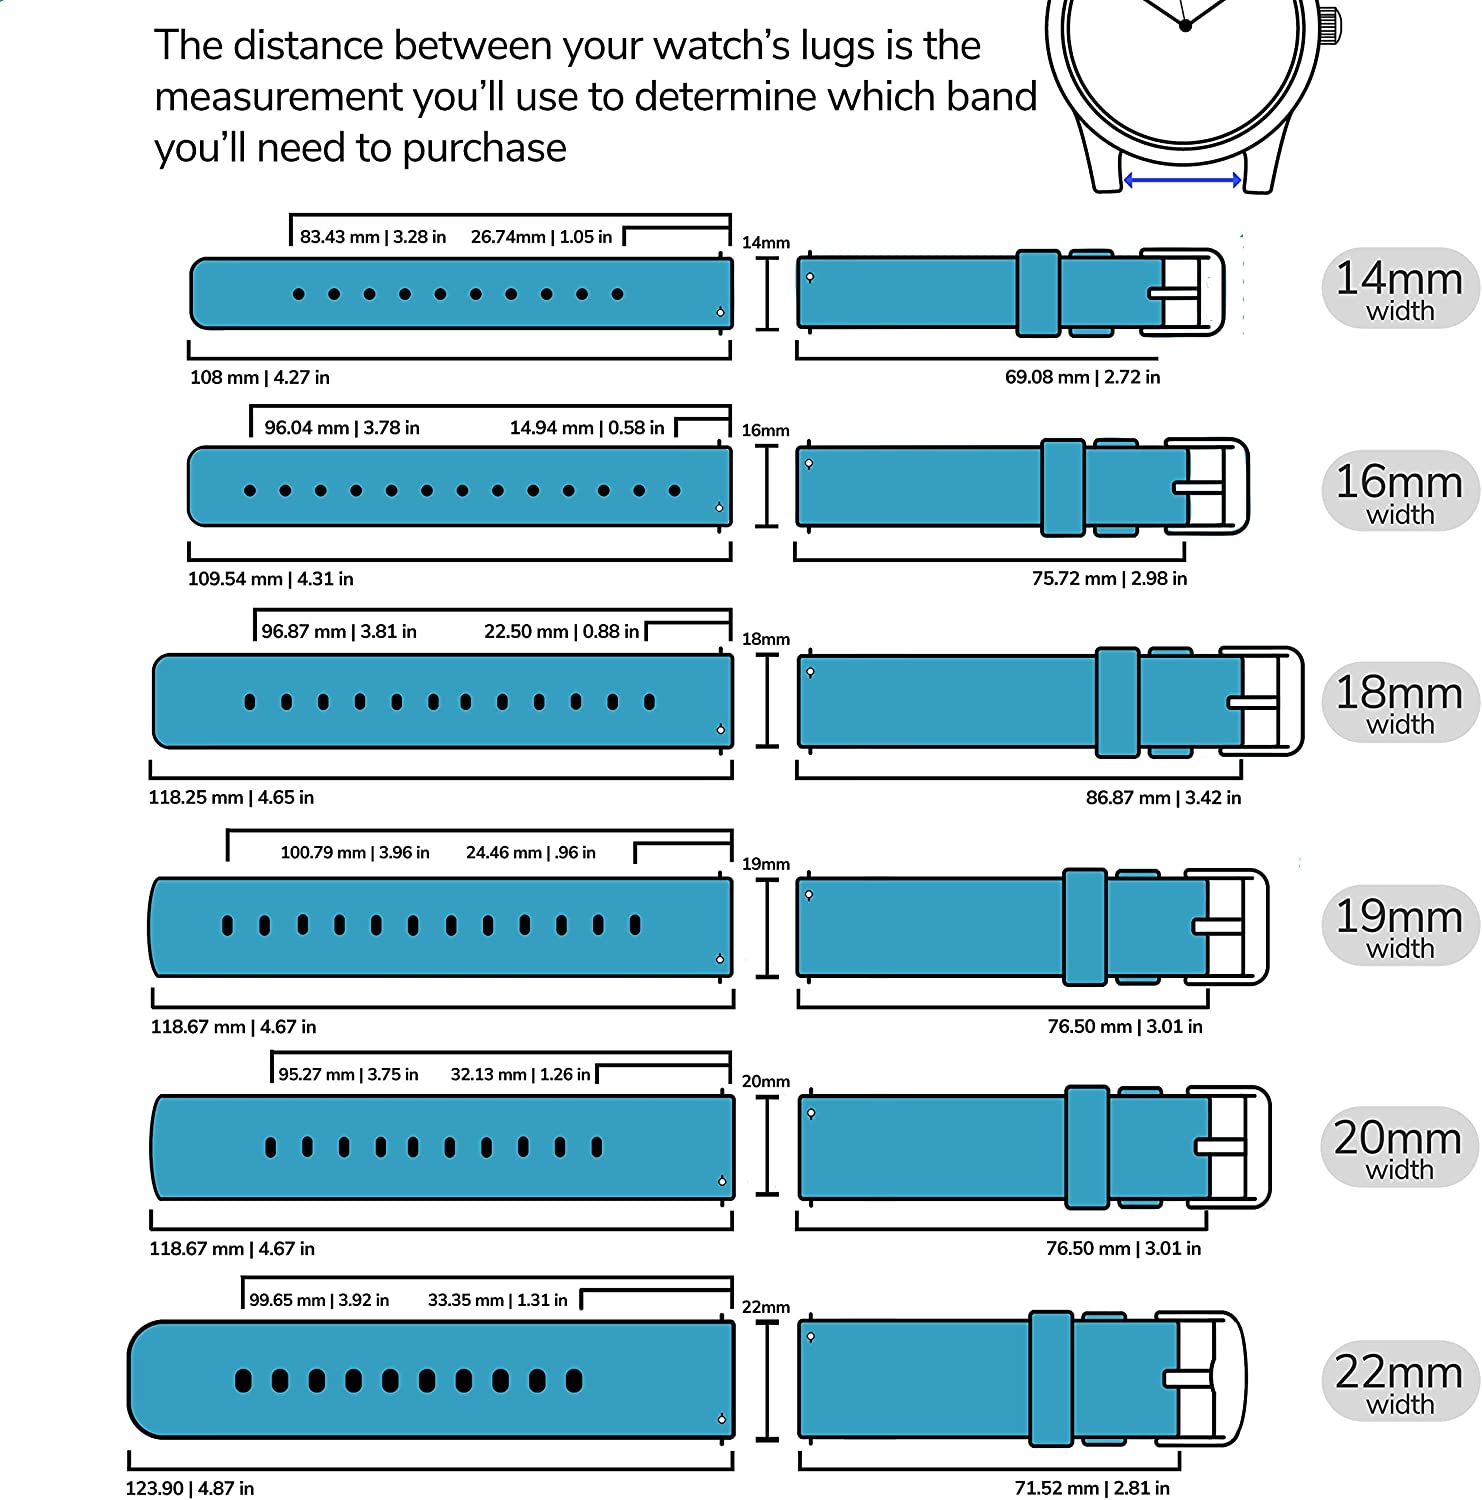 GadgetWraps 14mm Silicone Watch Band Strap with Quick Release Pins – Compatible with Pebble, Fossil, Skagen, Wristology - 14mm Quick Release Watch Band (Aqua Blue, 14mm)